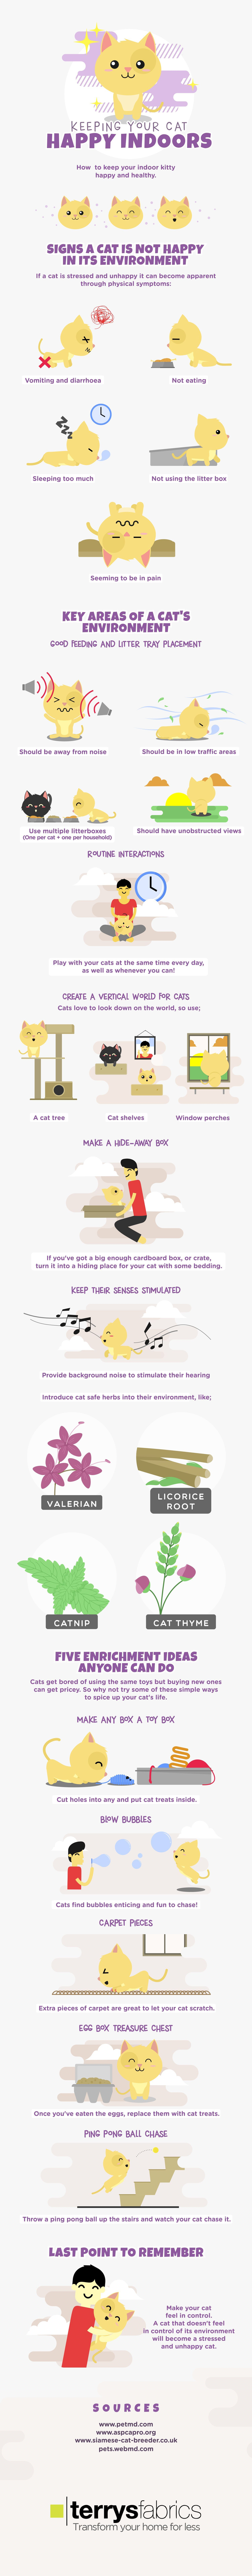 Happy Cat Happy Human The Cat On My Head Cat Infographic Cat Care Kittens